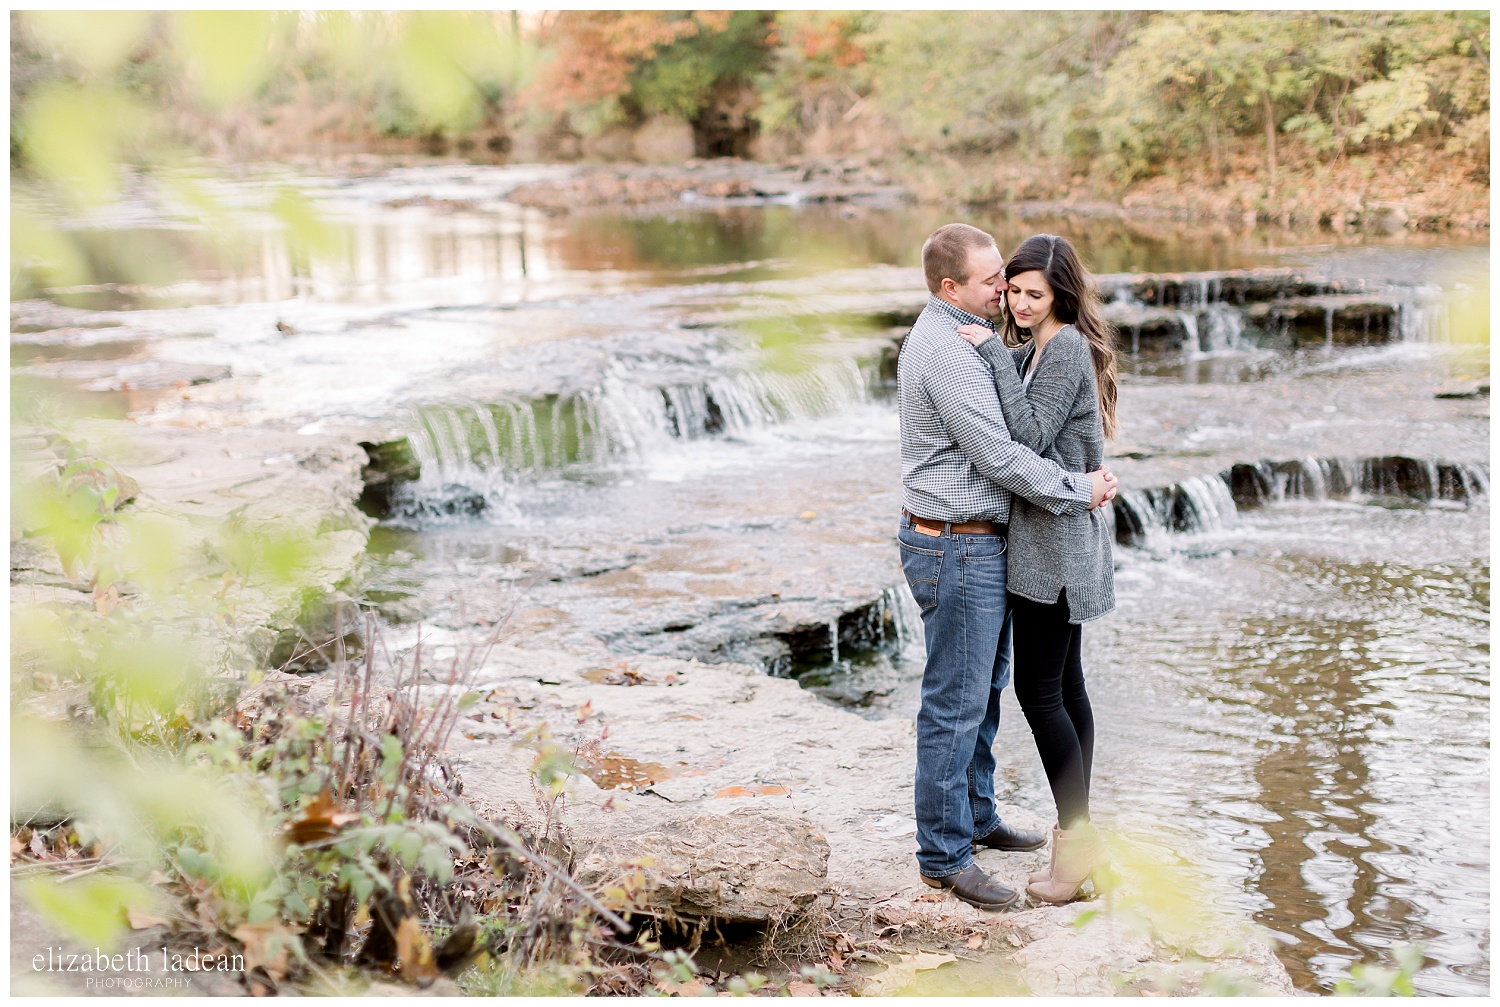 Kansas-City-Fall-Engagement-Photography-S+D-2018-elizabeth-ladean-photography-photo_2401.jpg